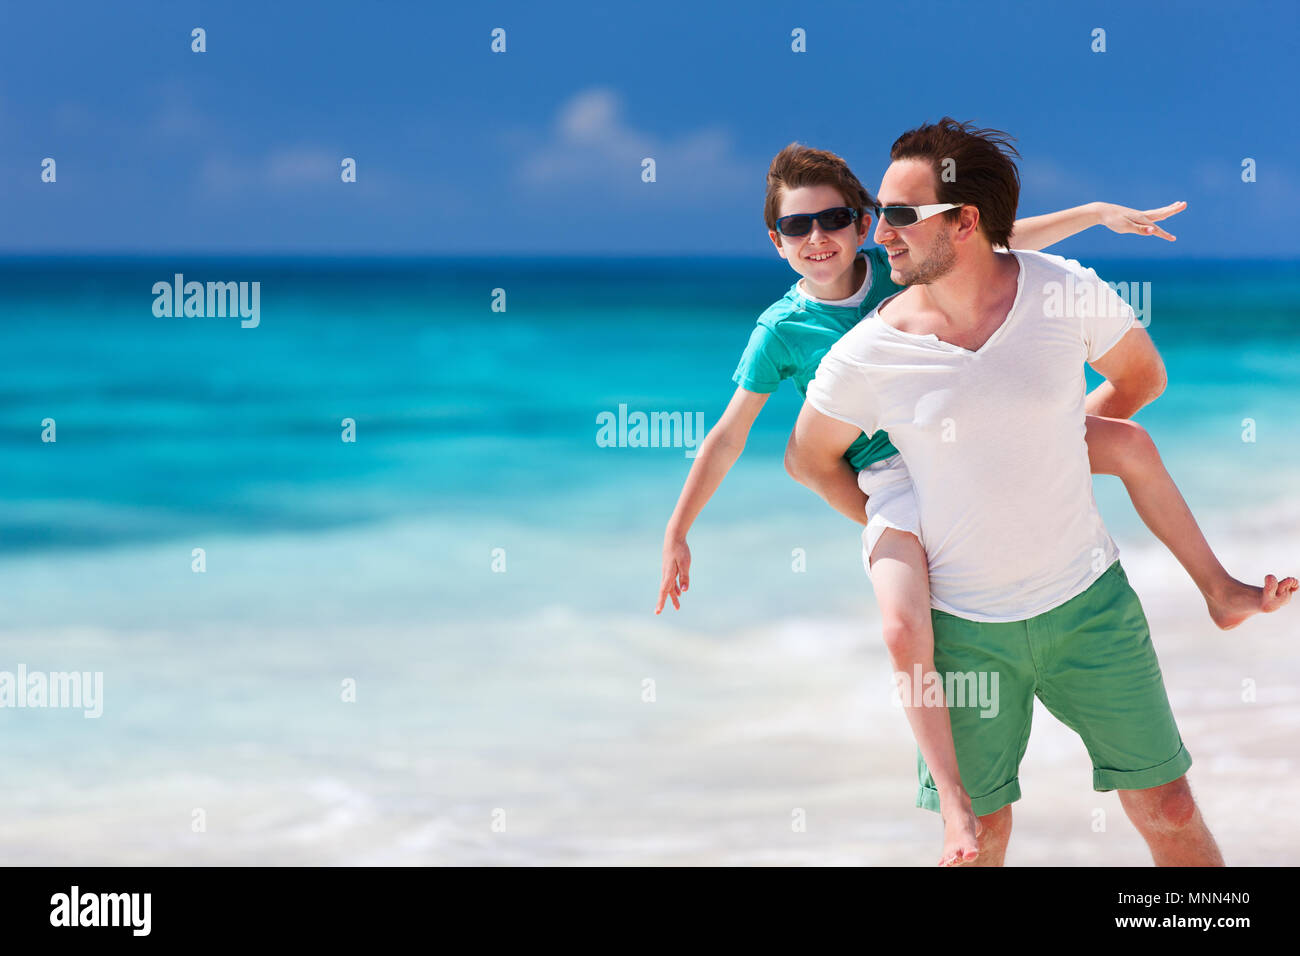 Happy father and son enjoying time at beach during family vacation - Stock Image